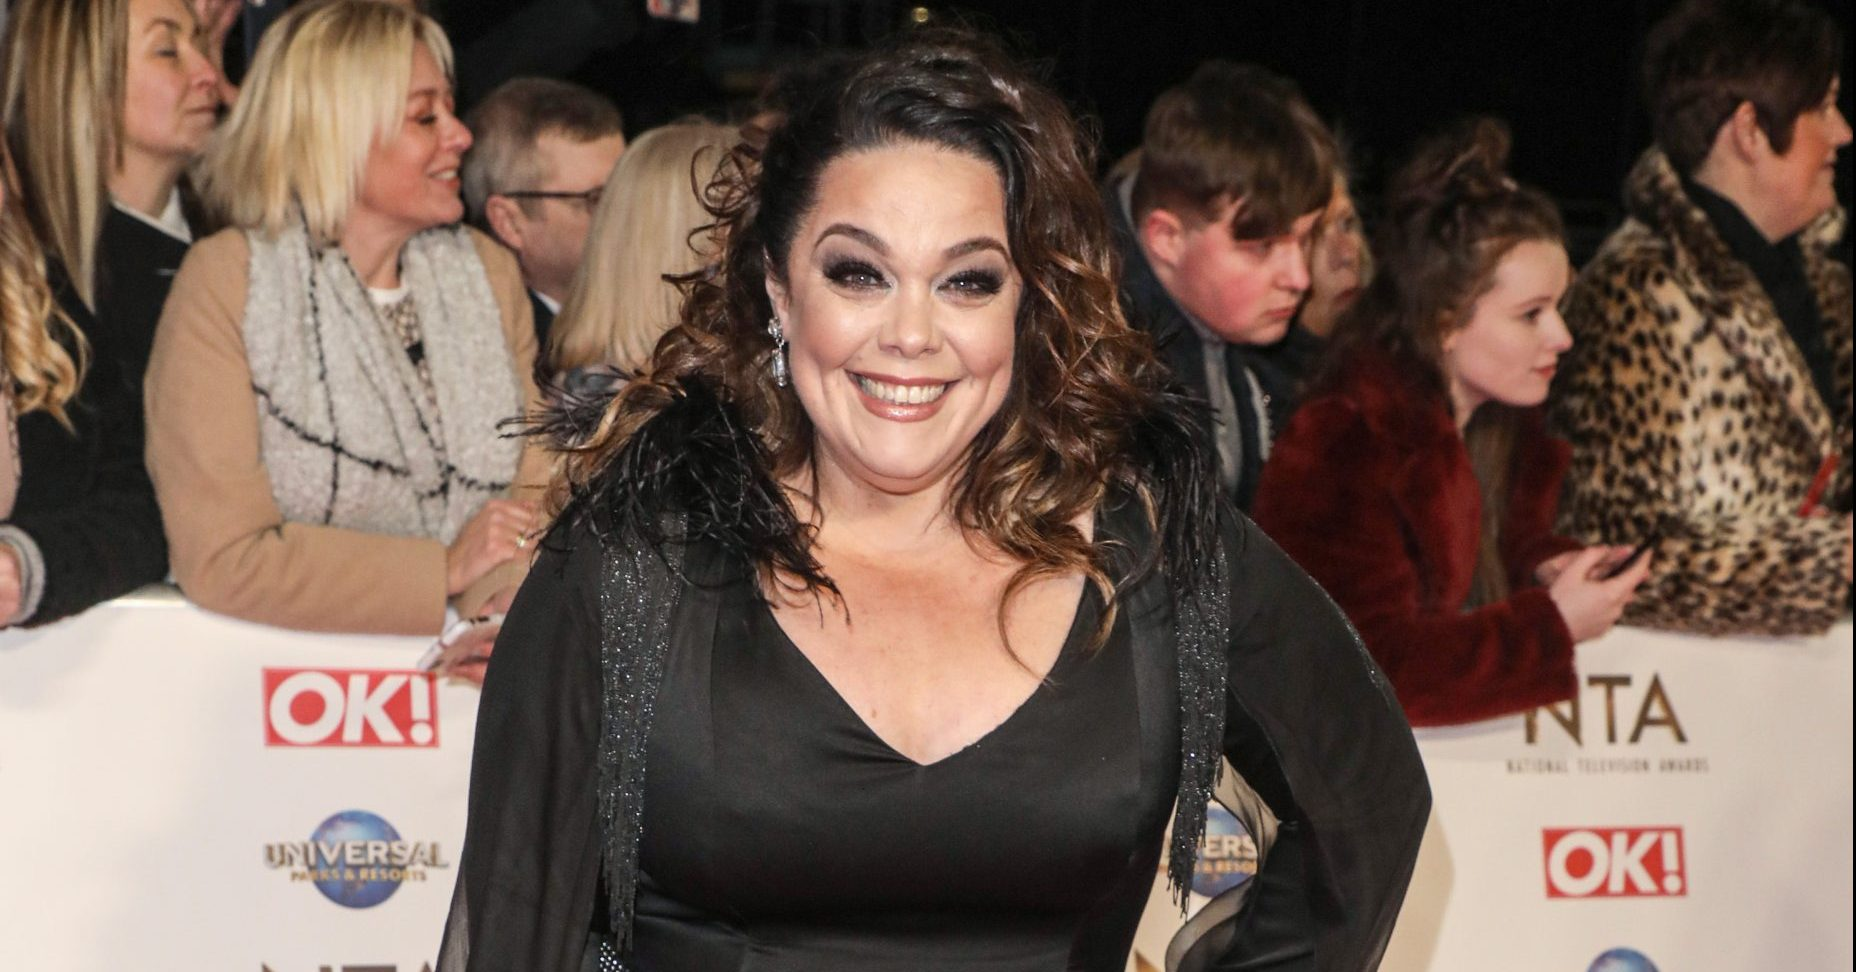 Emmerdale actress Lisa Riley reveals special tribute to 104-year-old uncle who died of coronavirus